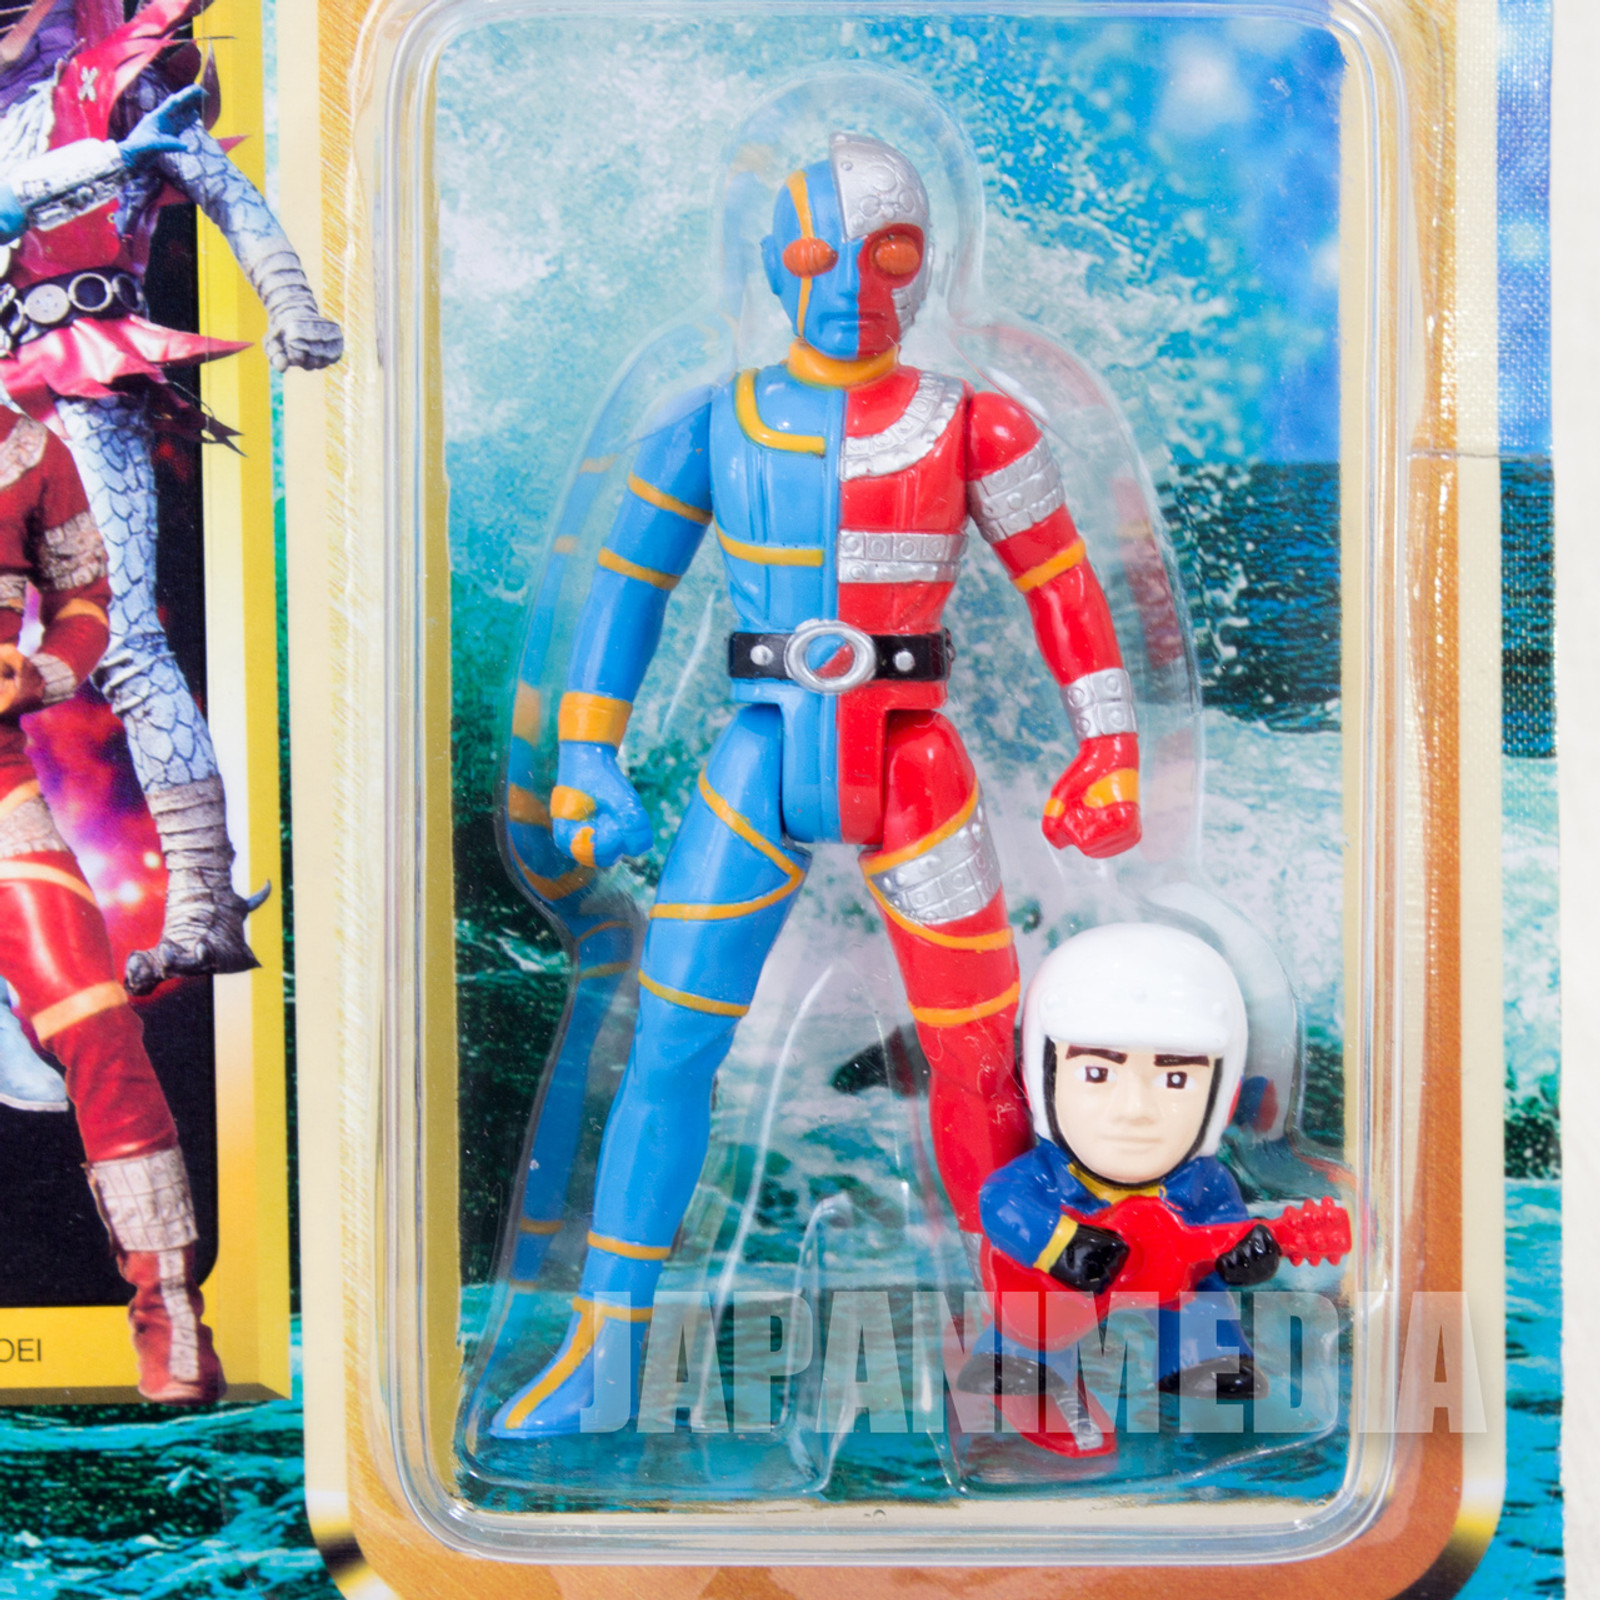 Kikaider Toei Hero Action Figure Collection JAPAN ANIME TOKUSATSU